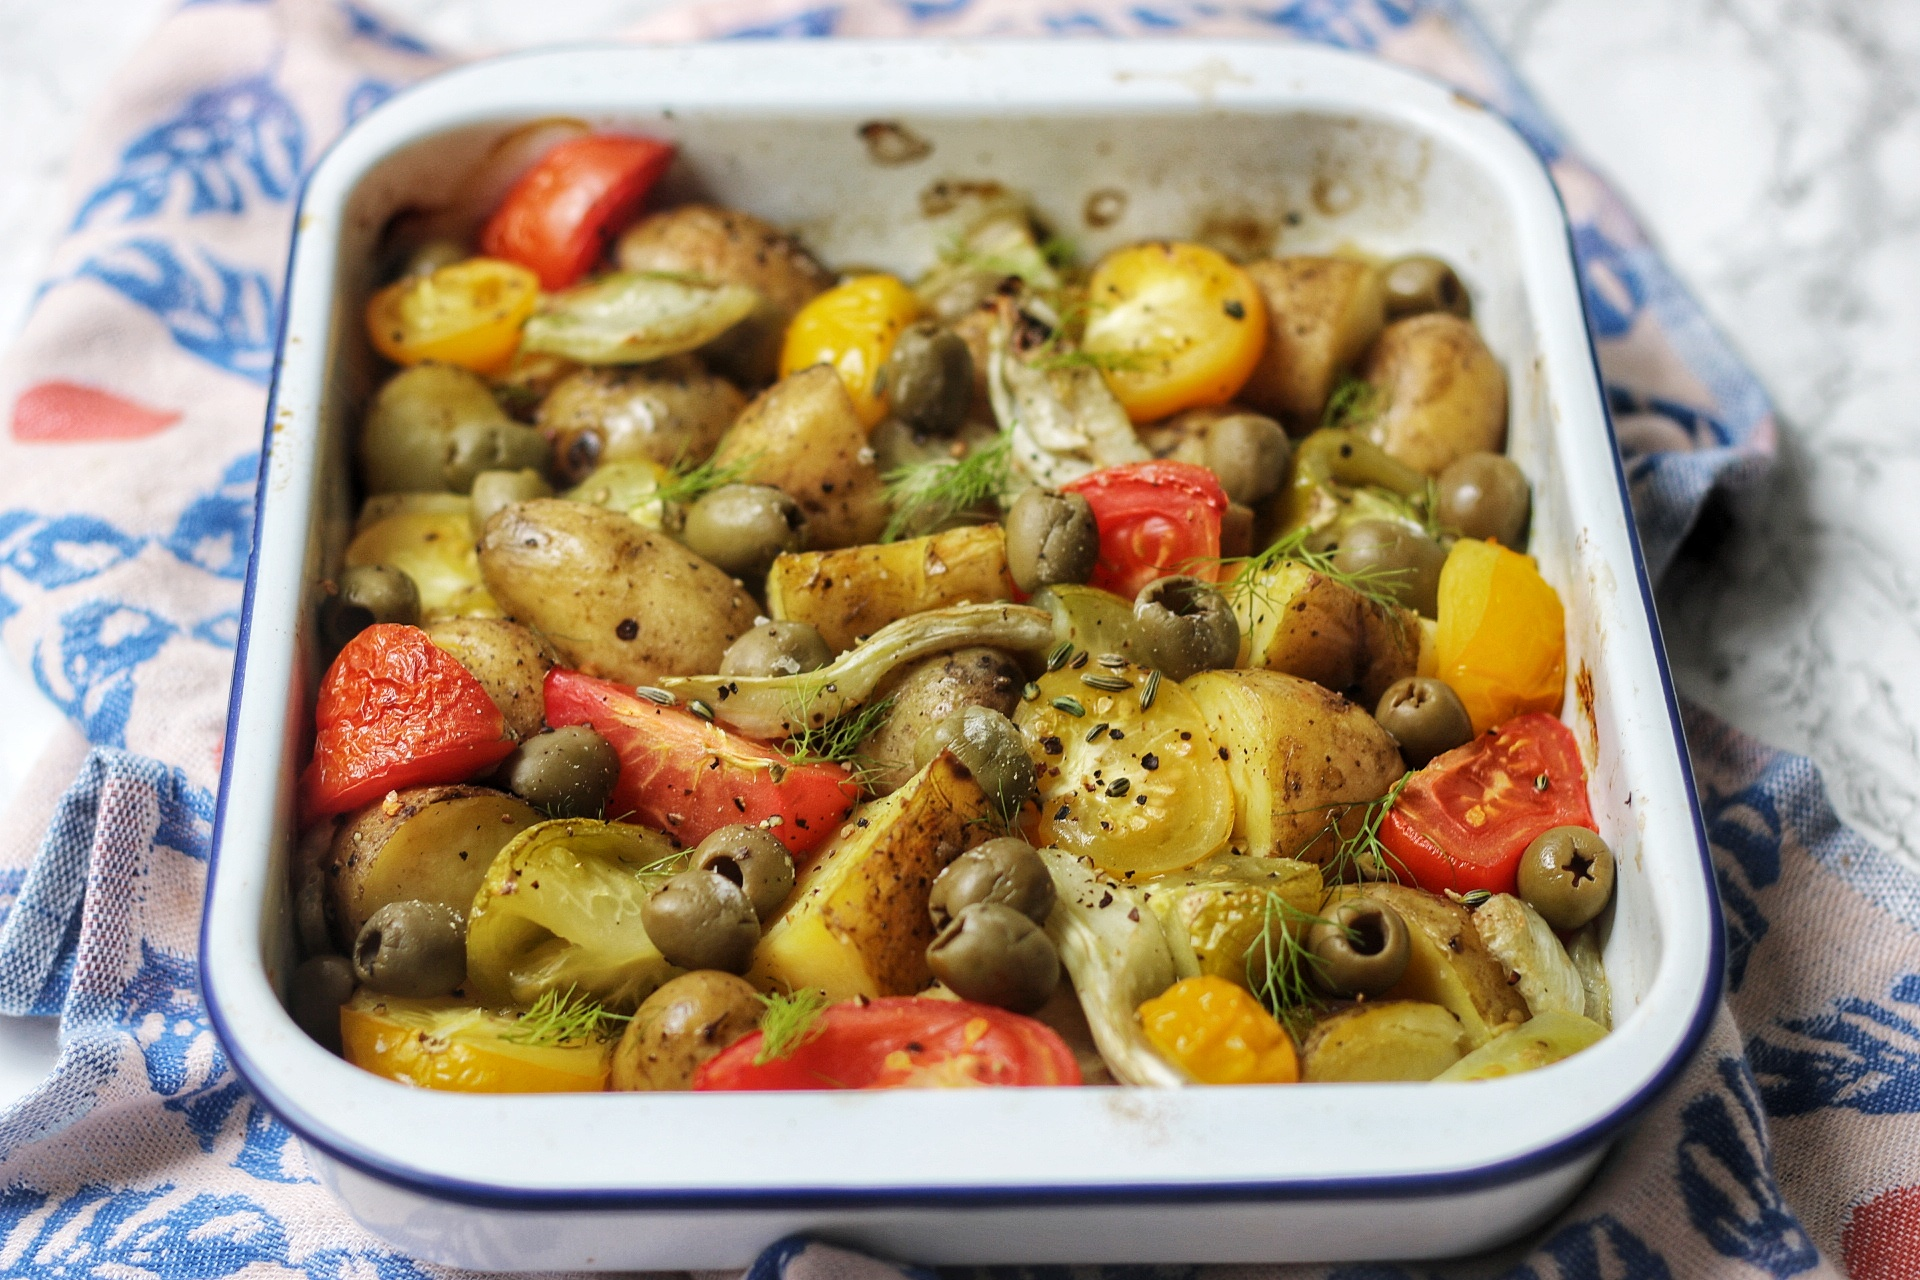 Roasted fennel and potatoes with tomato and olives